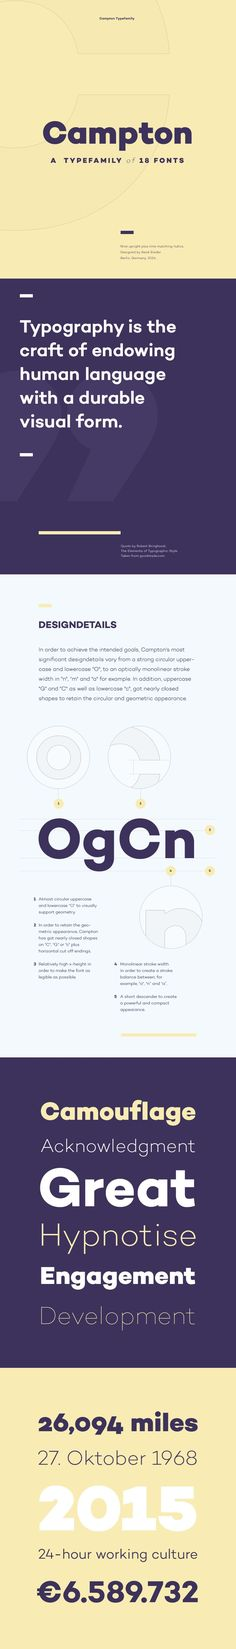 Campton free font Campton is a simple sans serif with a geometric skeleton, based on the mid to early twentieth century visual trend of achieving n...